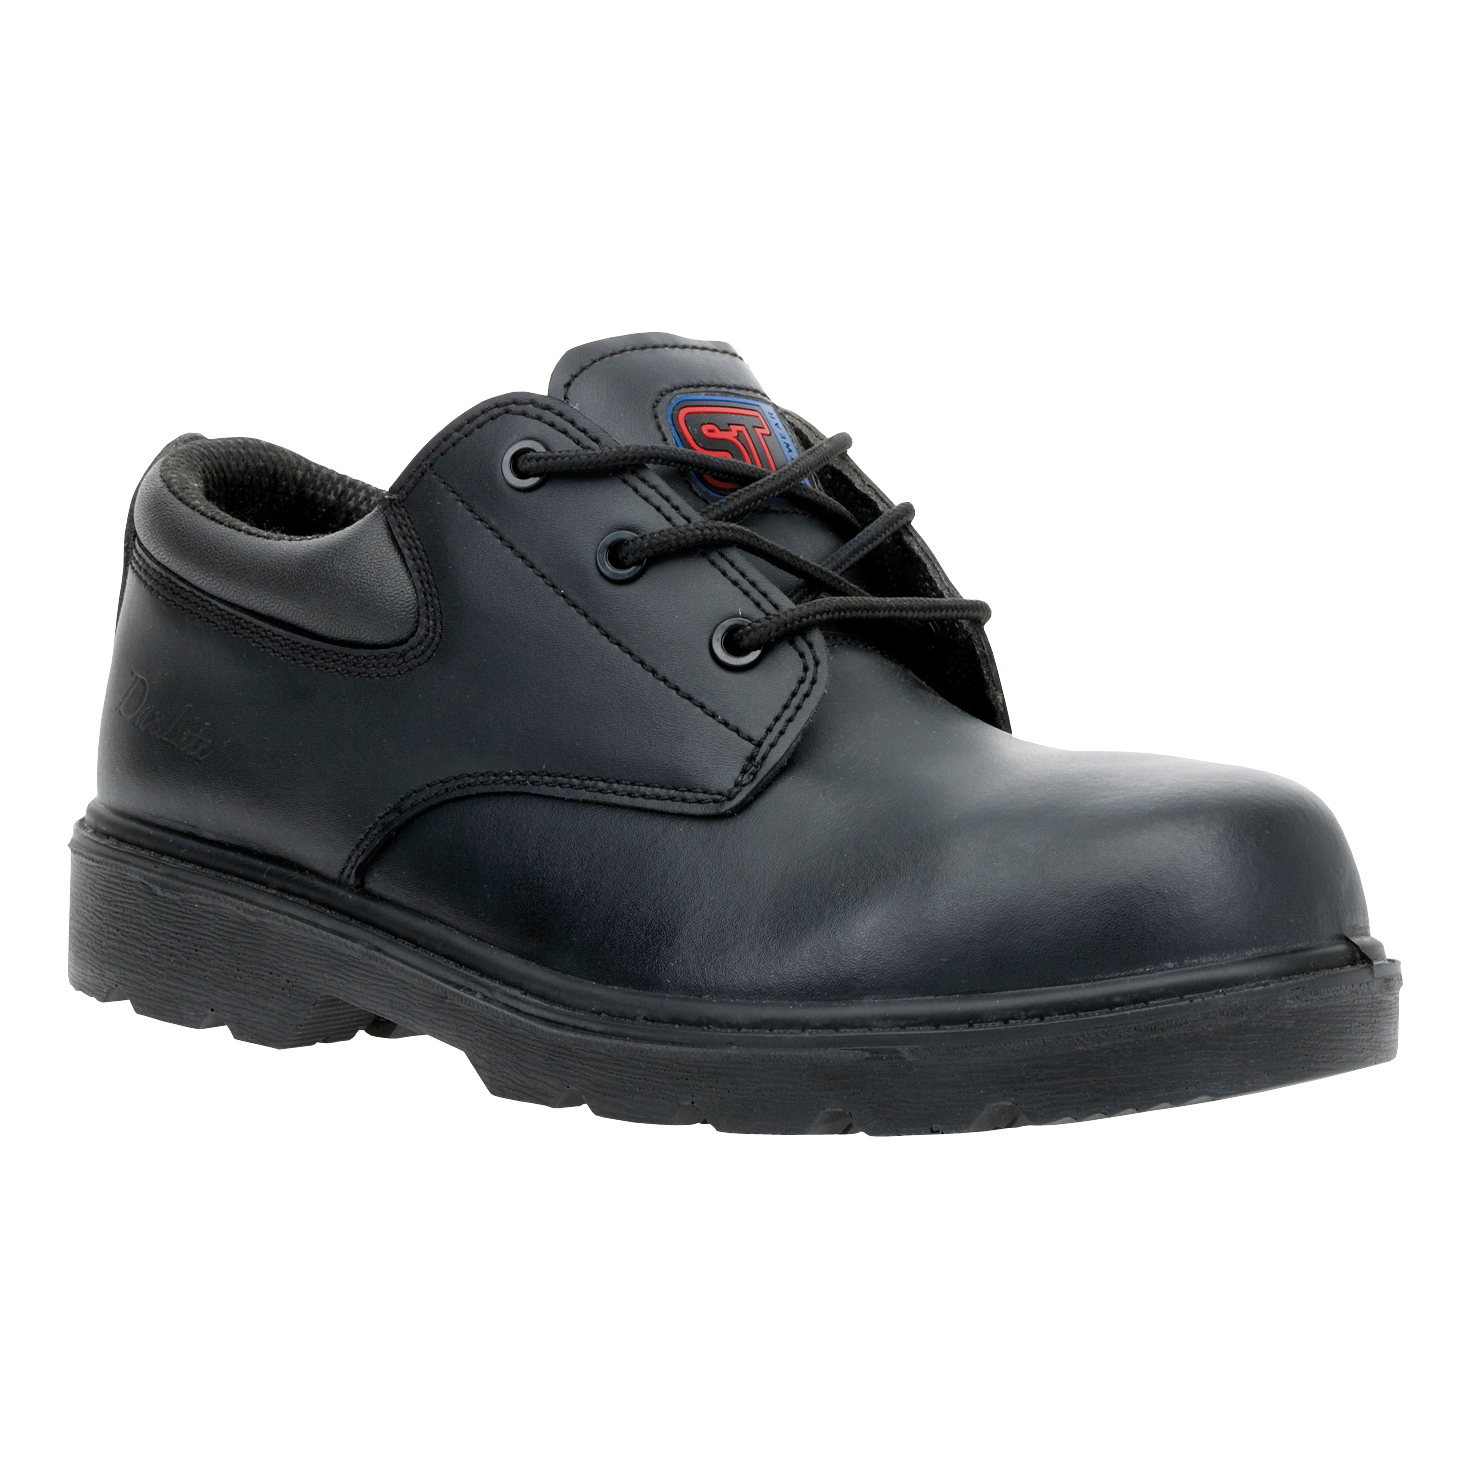 ST Dax Lite Air Comp' Shoe Metal Free Safety Toecap & Midsole Size 7 Blk Ref 90862 *Approx 3 Day L/Time*